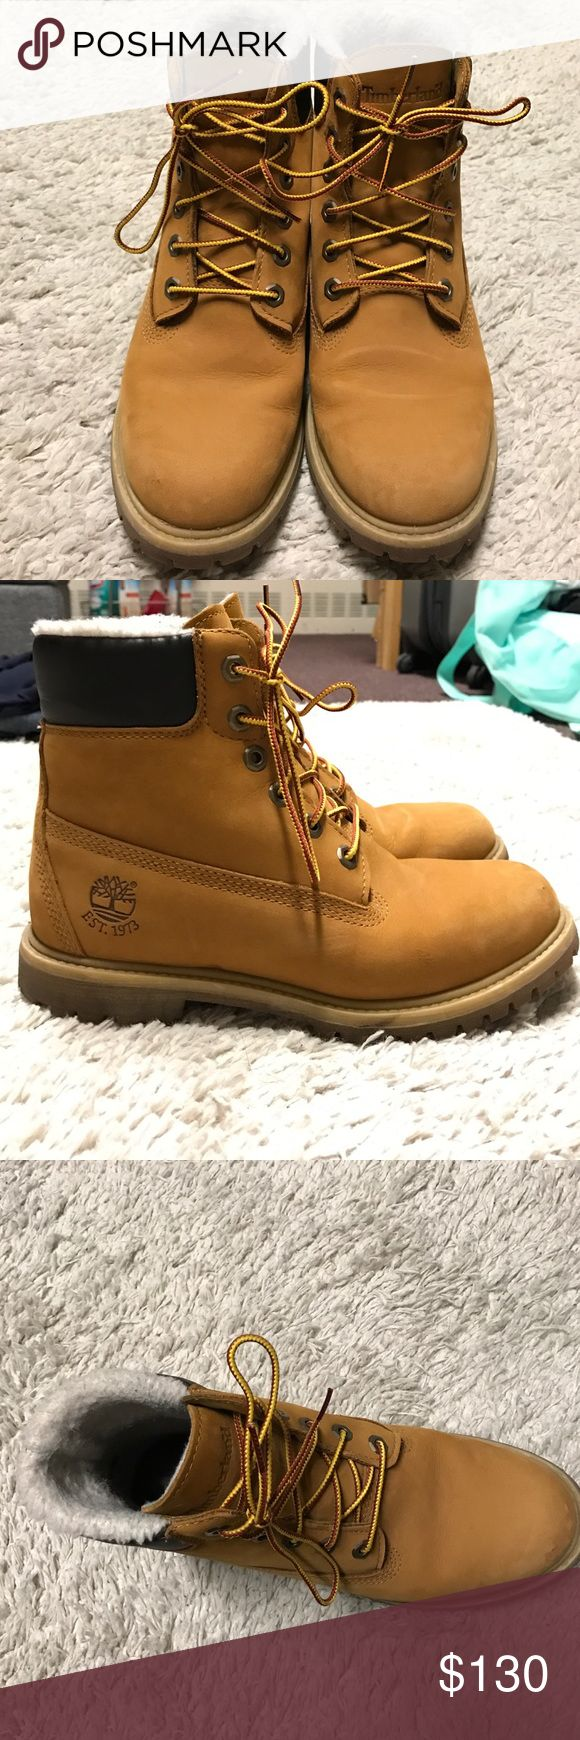 Timberland classic boots Nubuck timberland classic boots in great condition! Sherpa lined and slightly worn but great condition! Water proof as well! Timberland Shoes Winter & Rain Boots